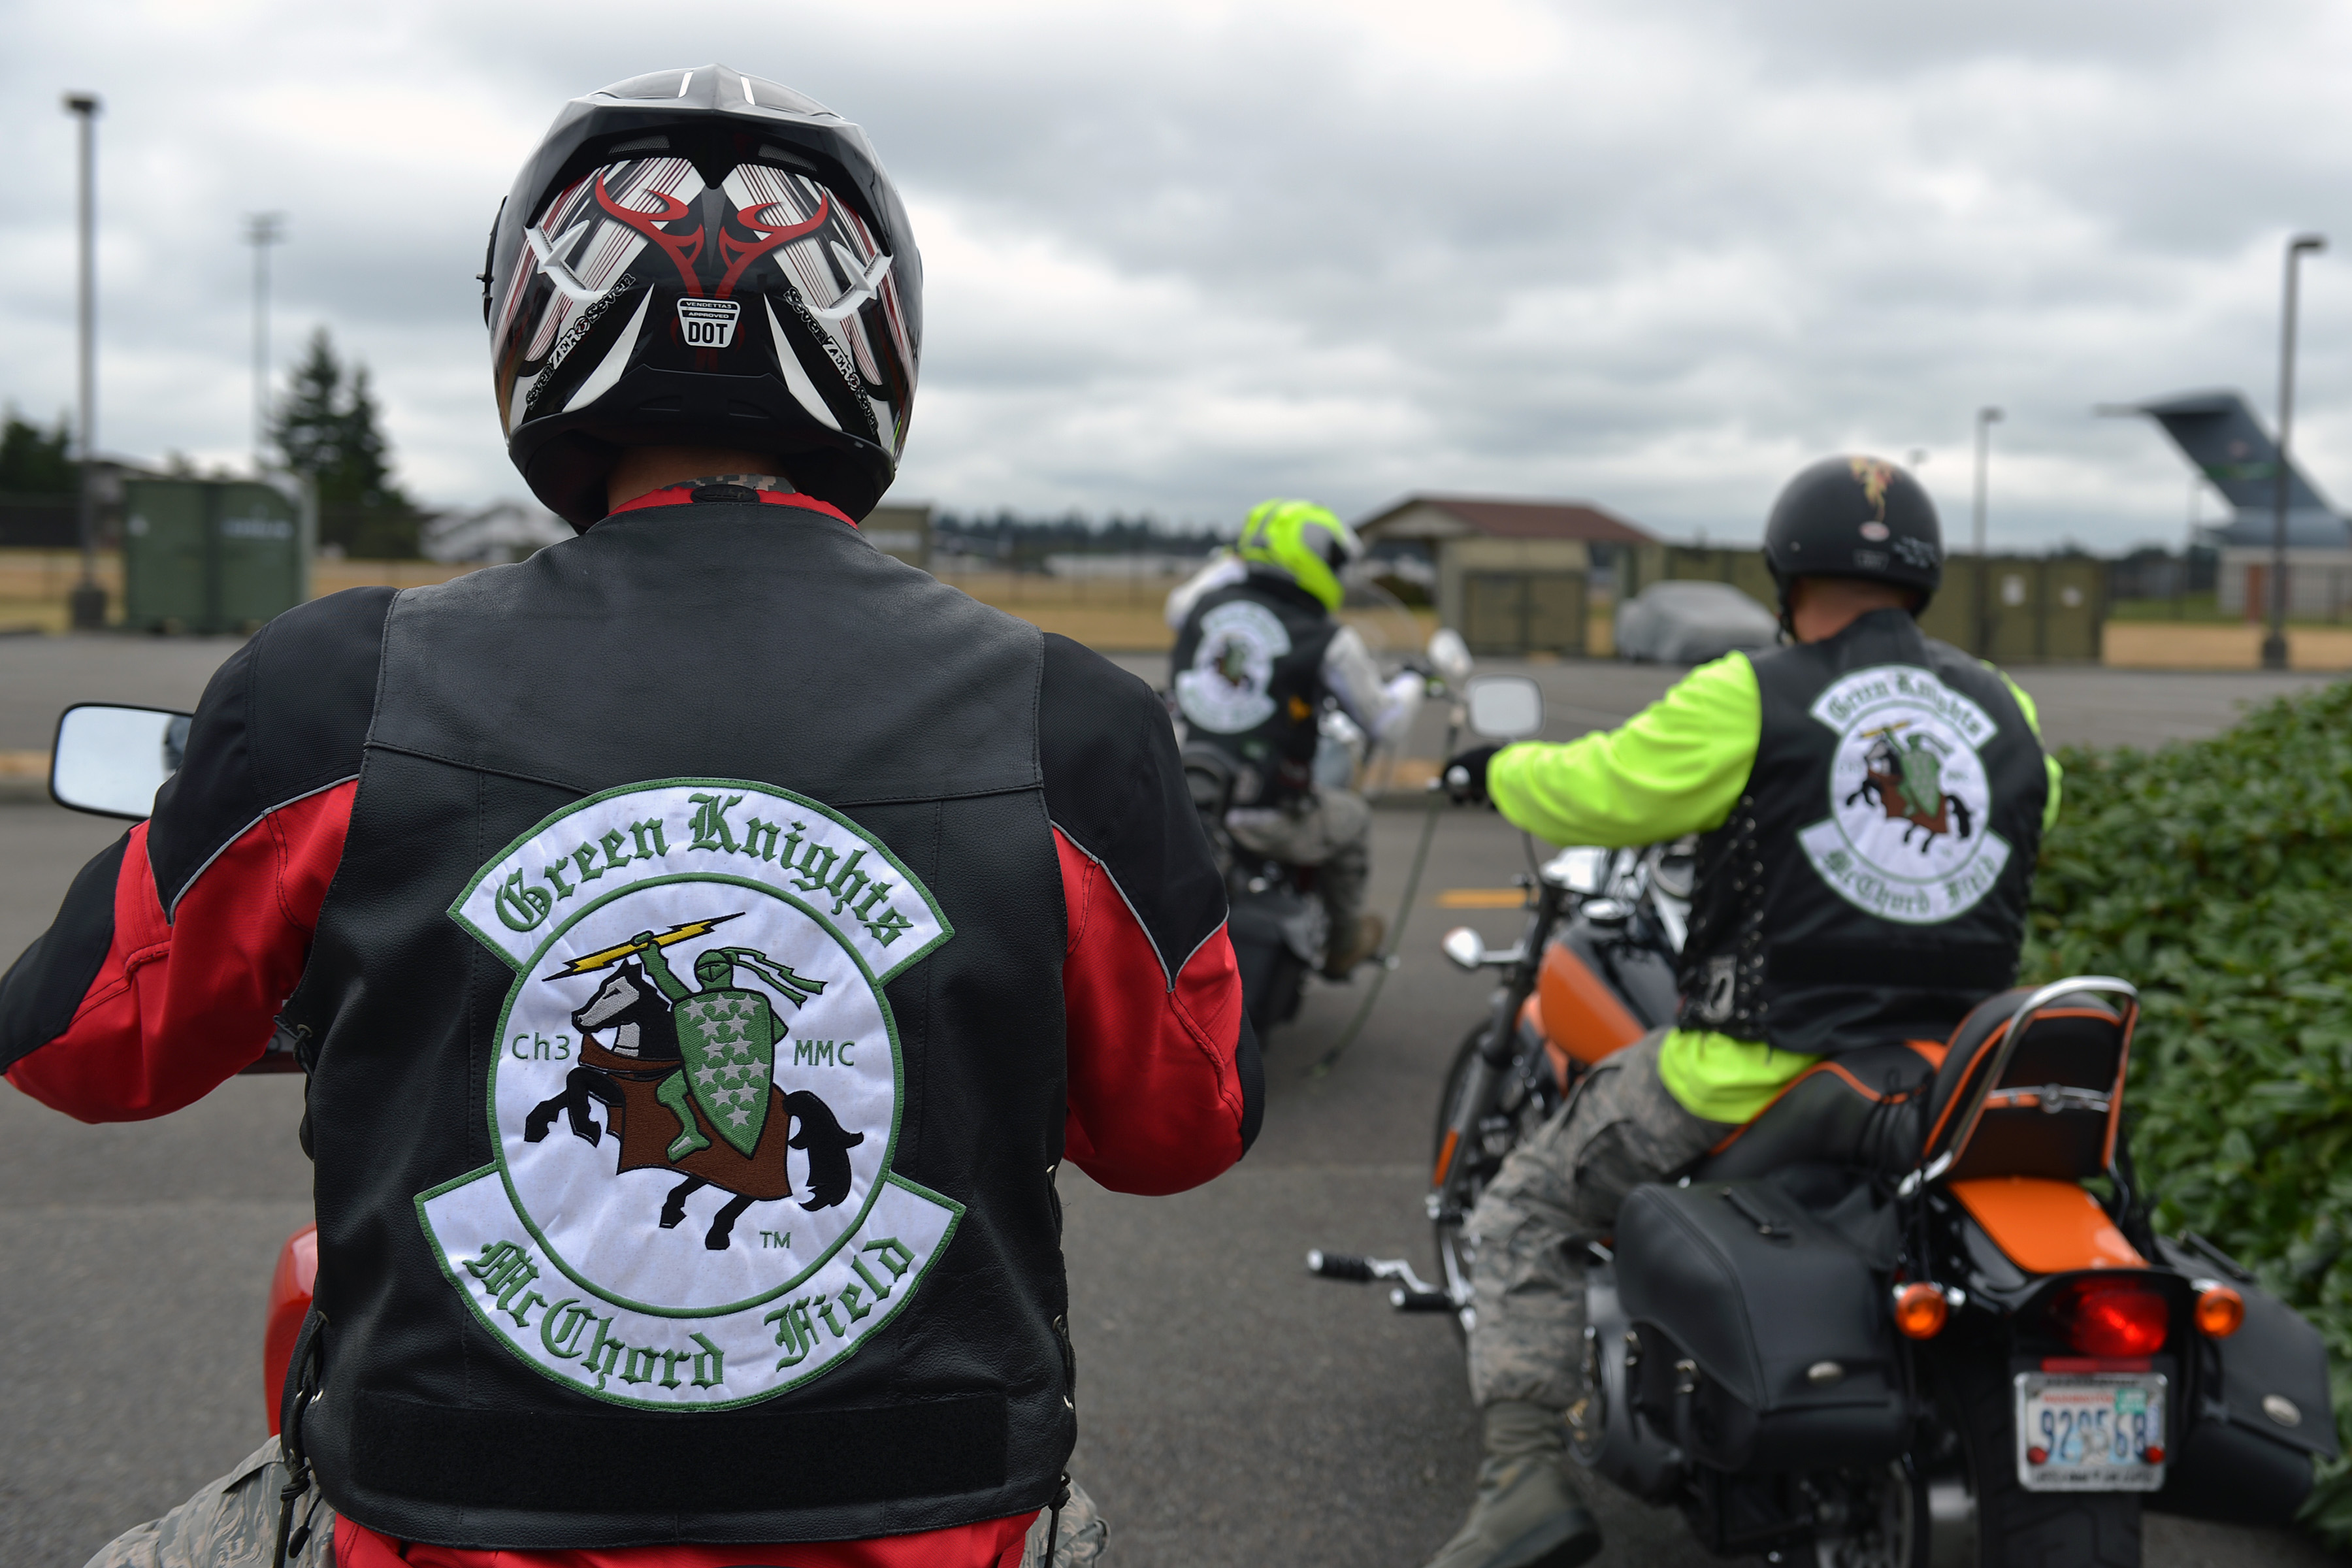 Usmc Toys For Tots Logo : Green knights forge safe riders gt team mcchord display